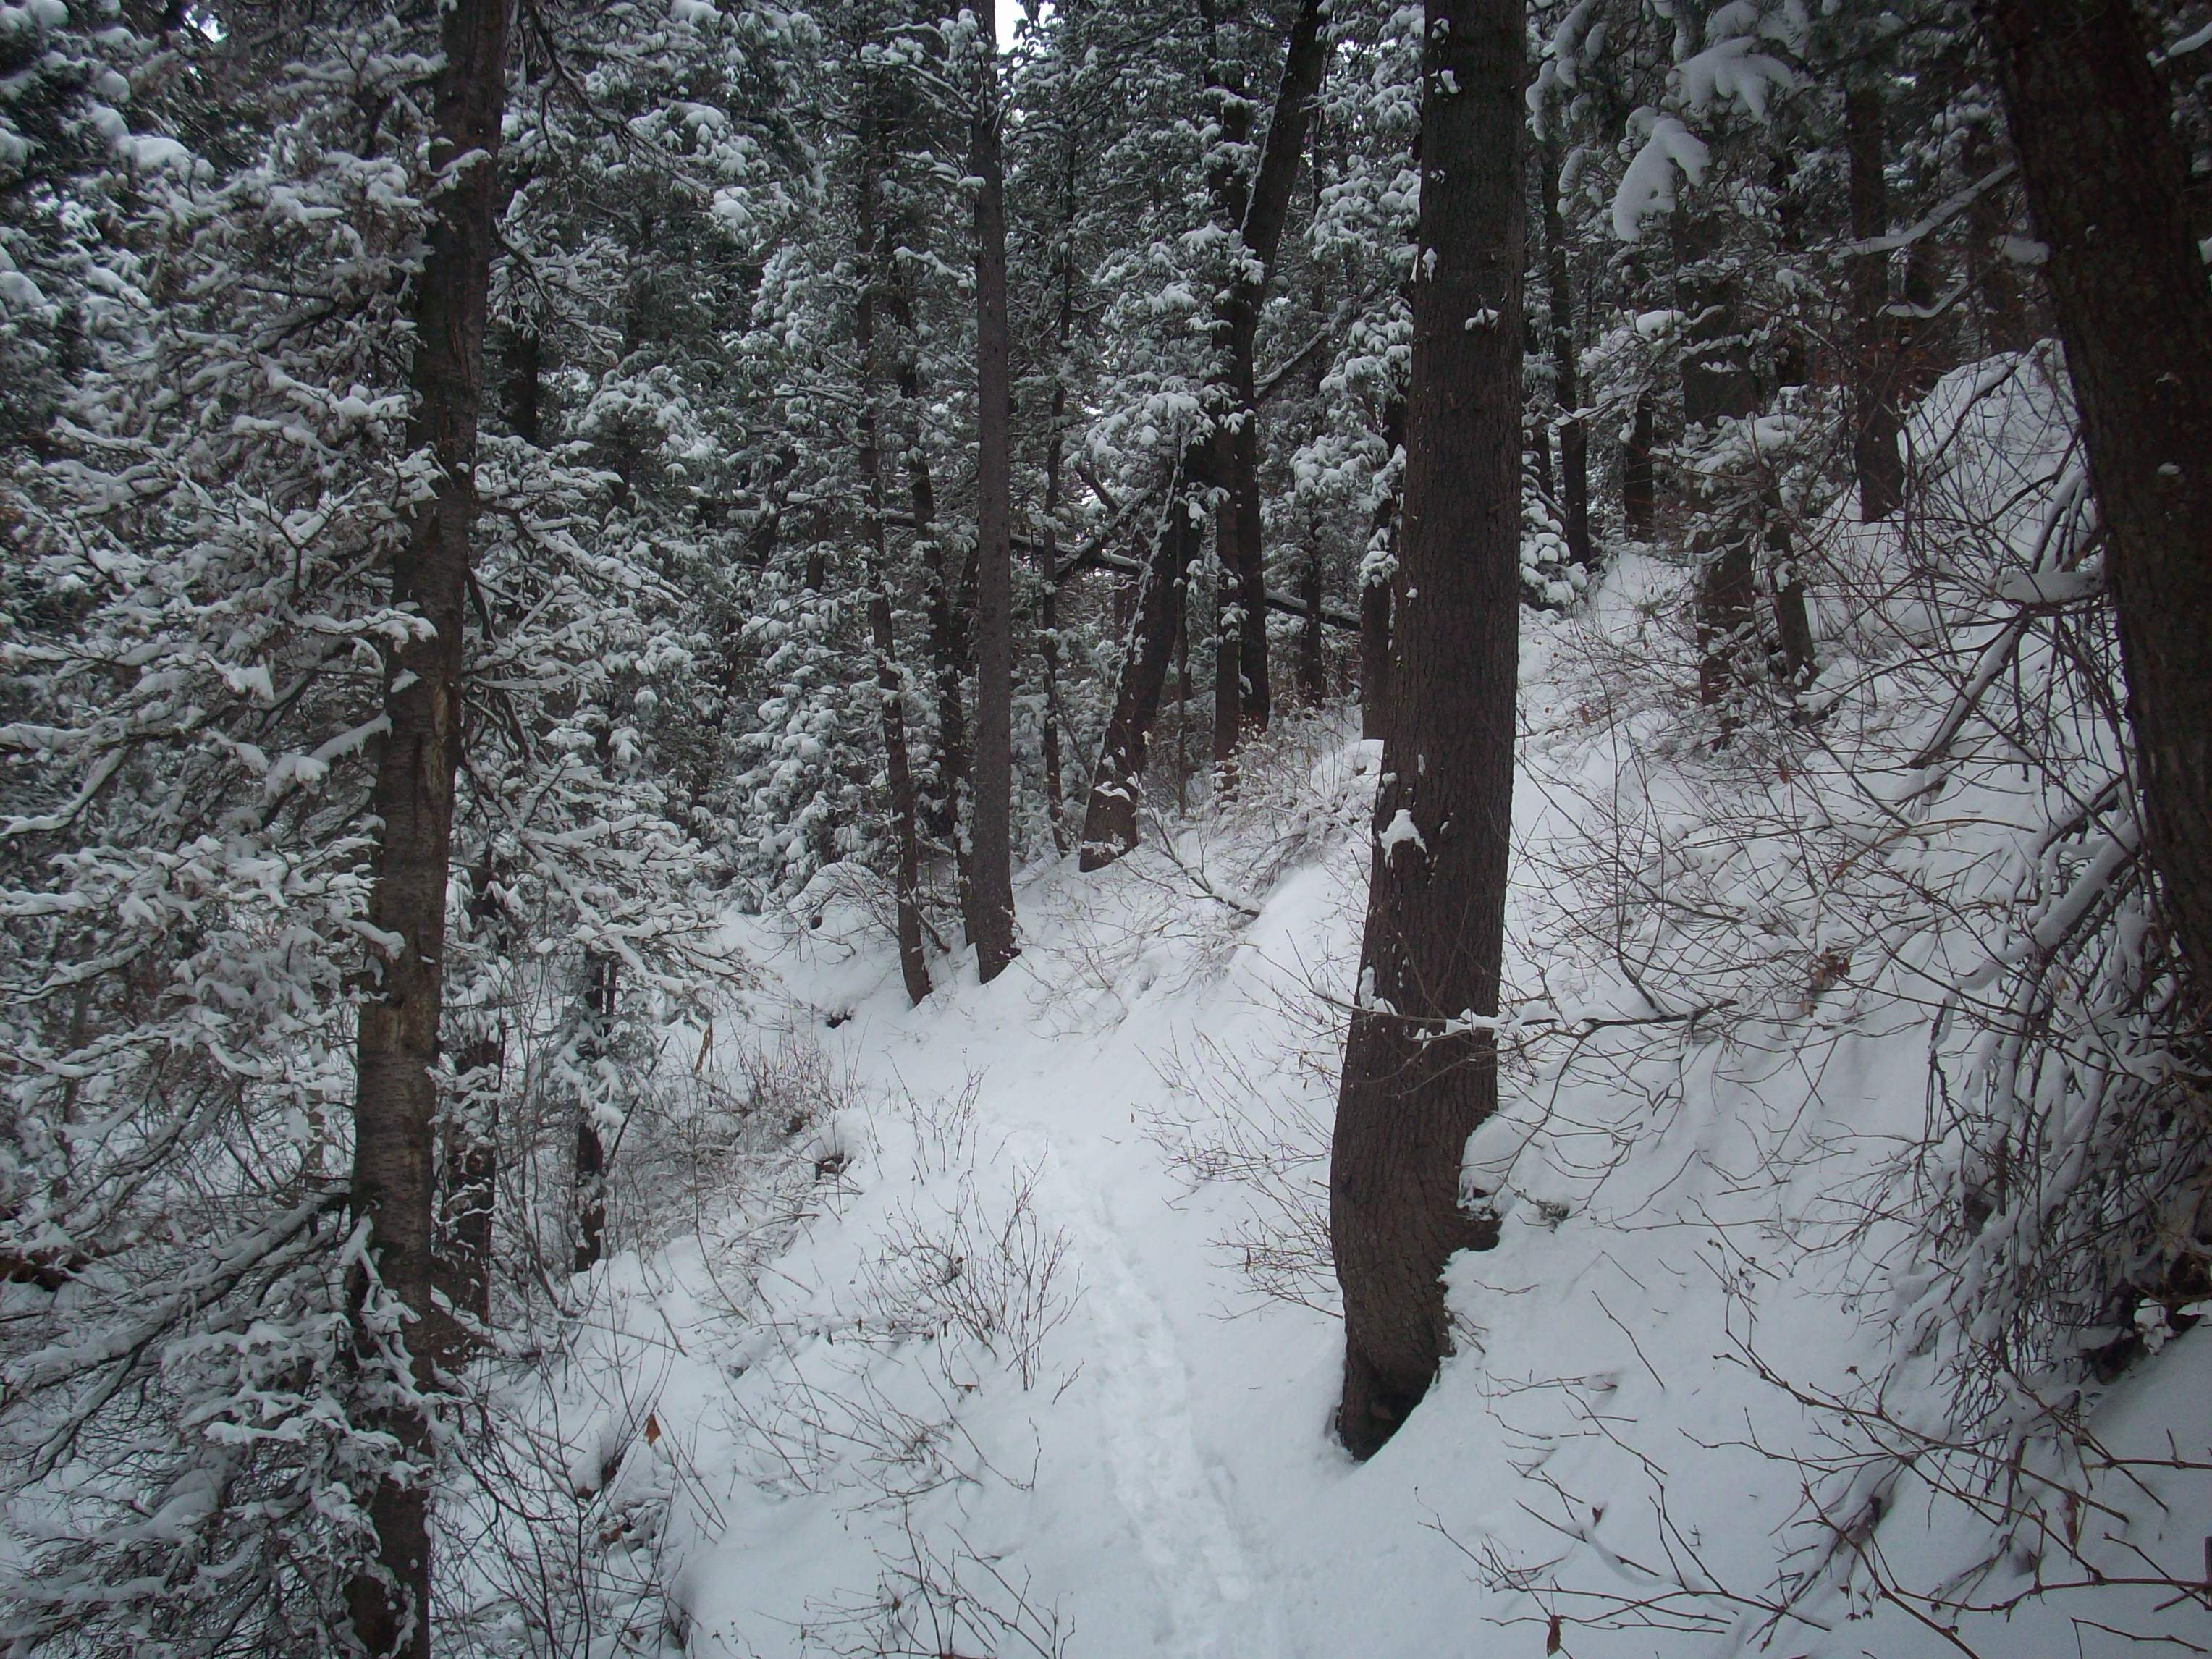 Snowy Trail Royalty Free Stock Images - Image: 36053799